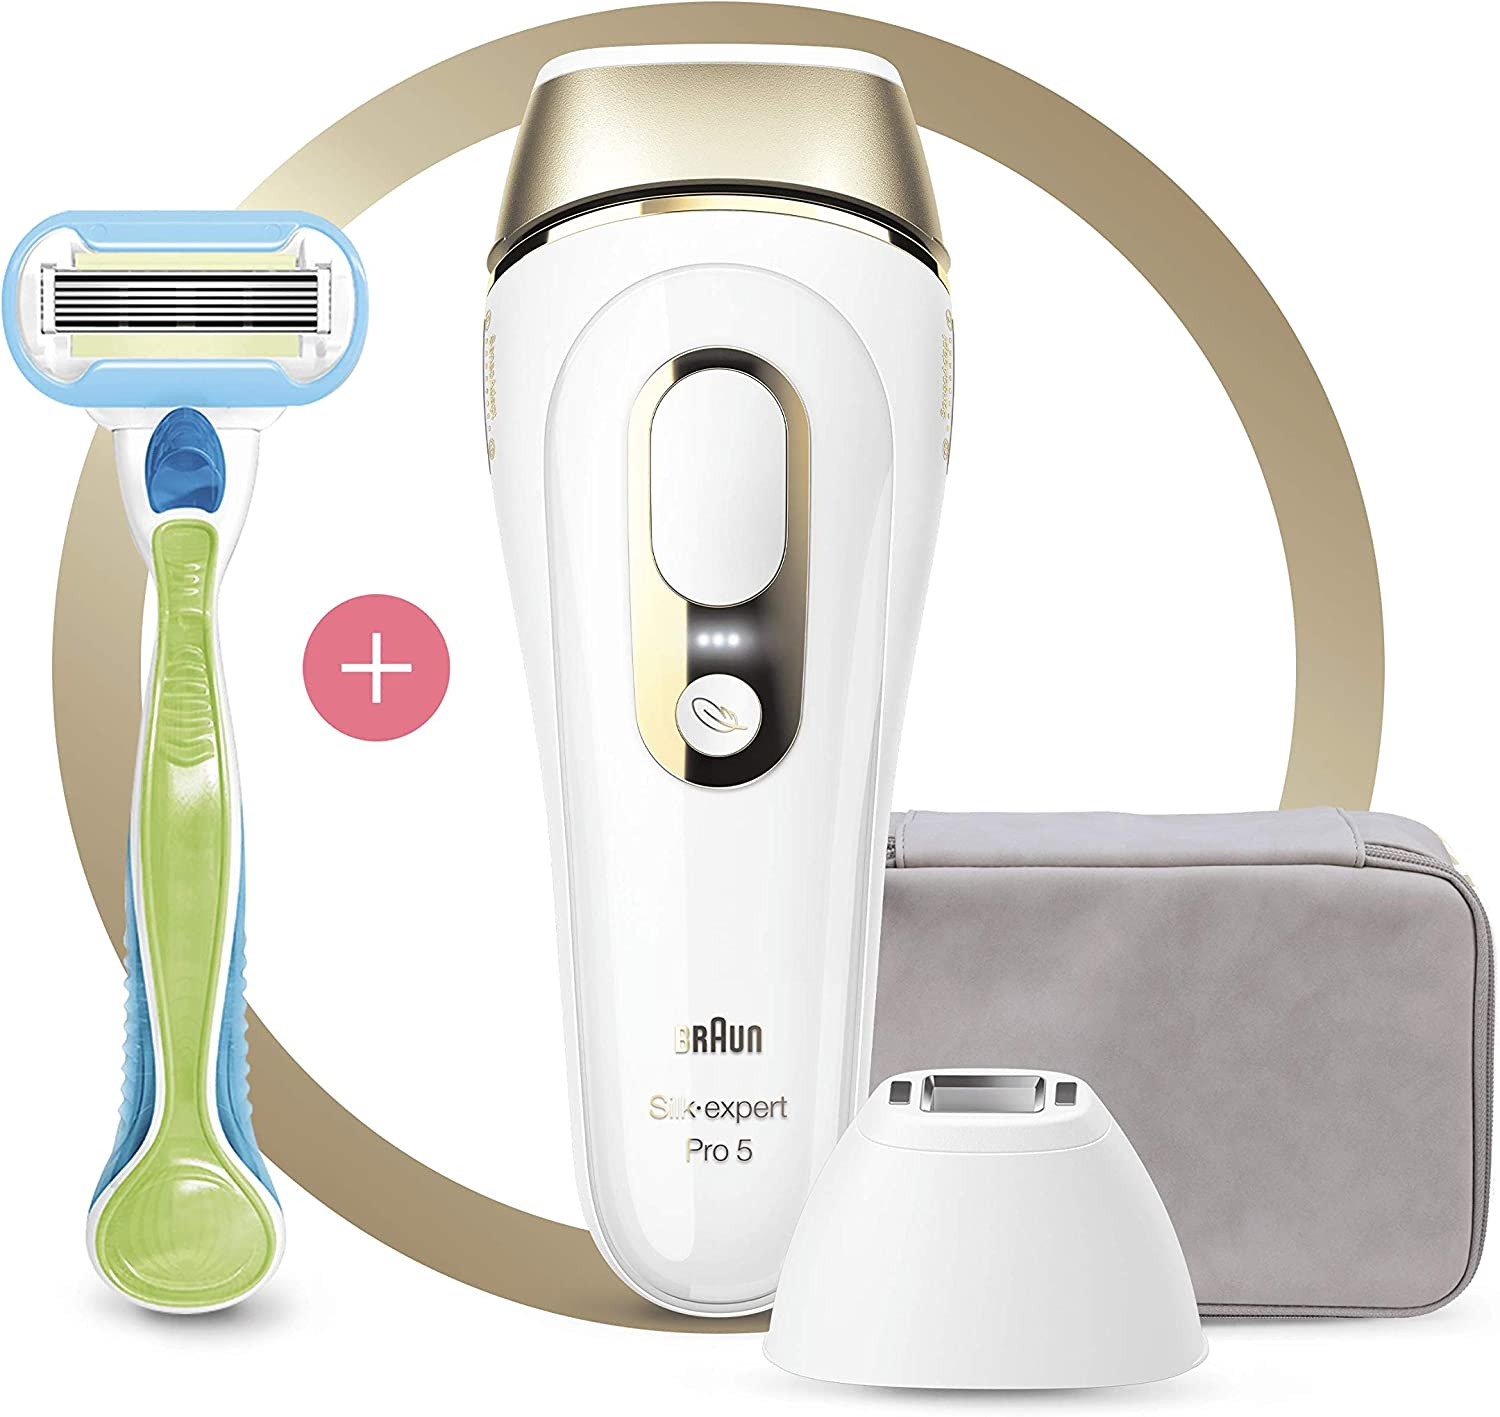 Amazon Com Braun Silk Expert Pro 5 Pl5124 Ipl Hair Removal With 3 Extras Precision Head Venus Razor And Premium Pouch White And Gold Health Personal Care